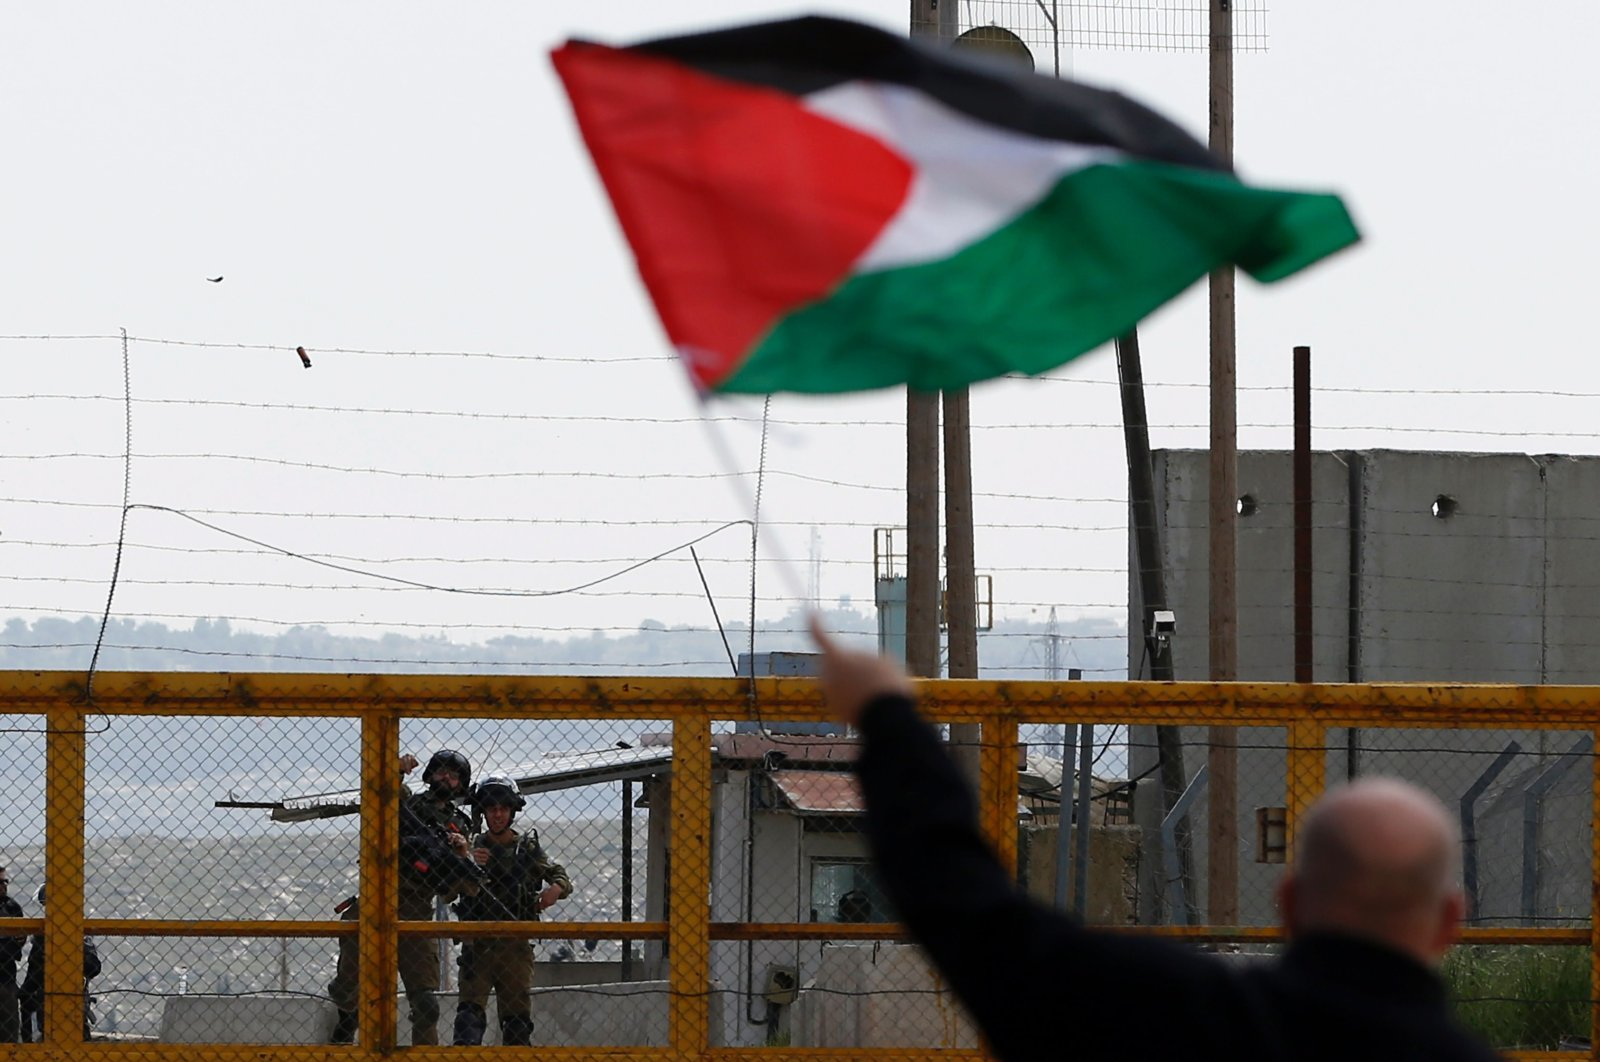 A Palestinian protester waves his national flag in front of Israeli security forces outside the compound of the Israeli-run Ofer prison near Betunia in the Israeli-occupied West Bank, March 30, 2016. (AFP Photo)